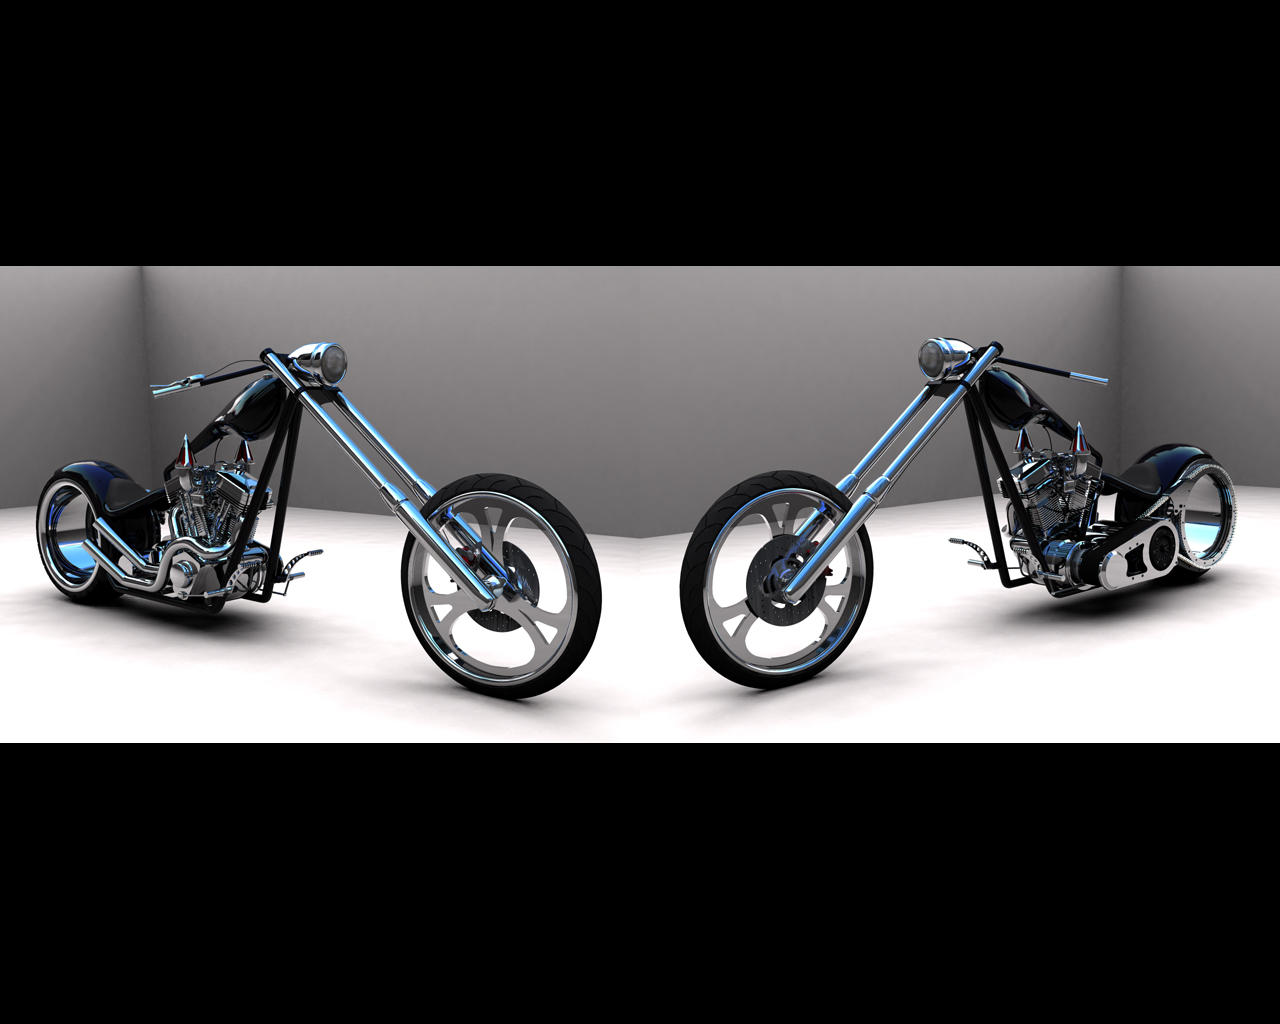 Black Chopper WP 2 by scogs